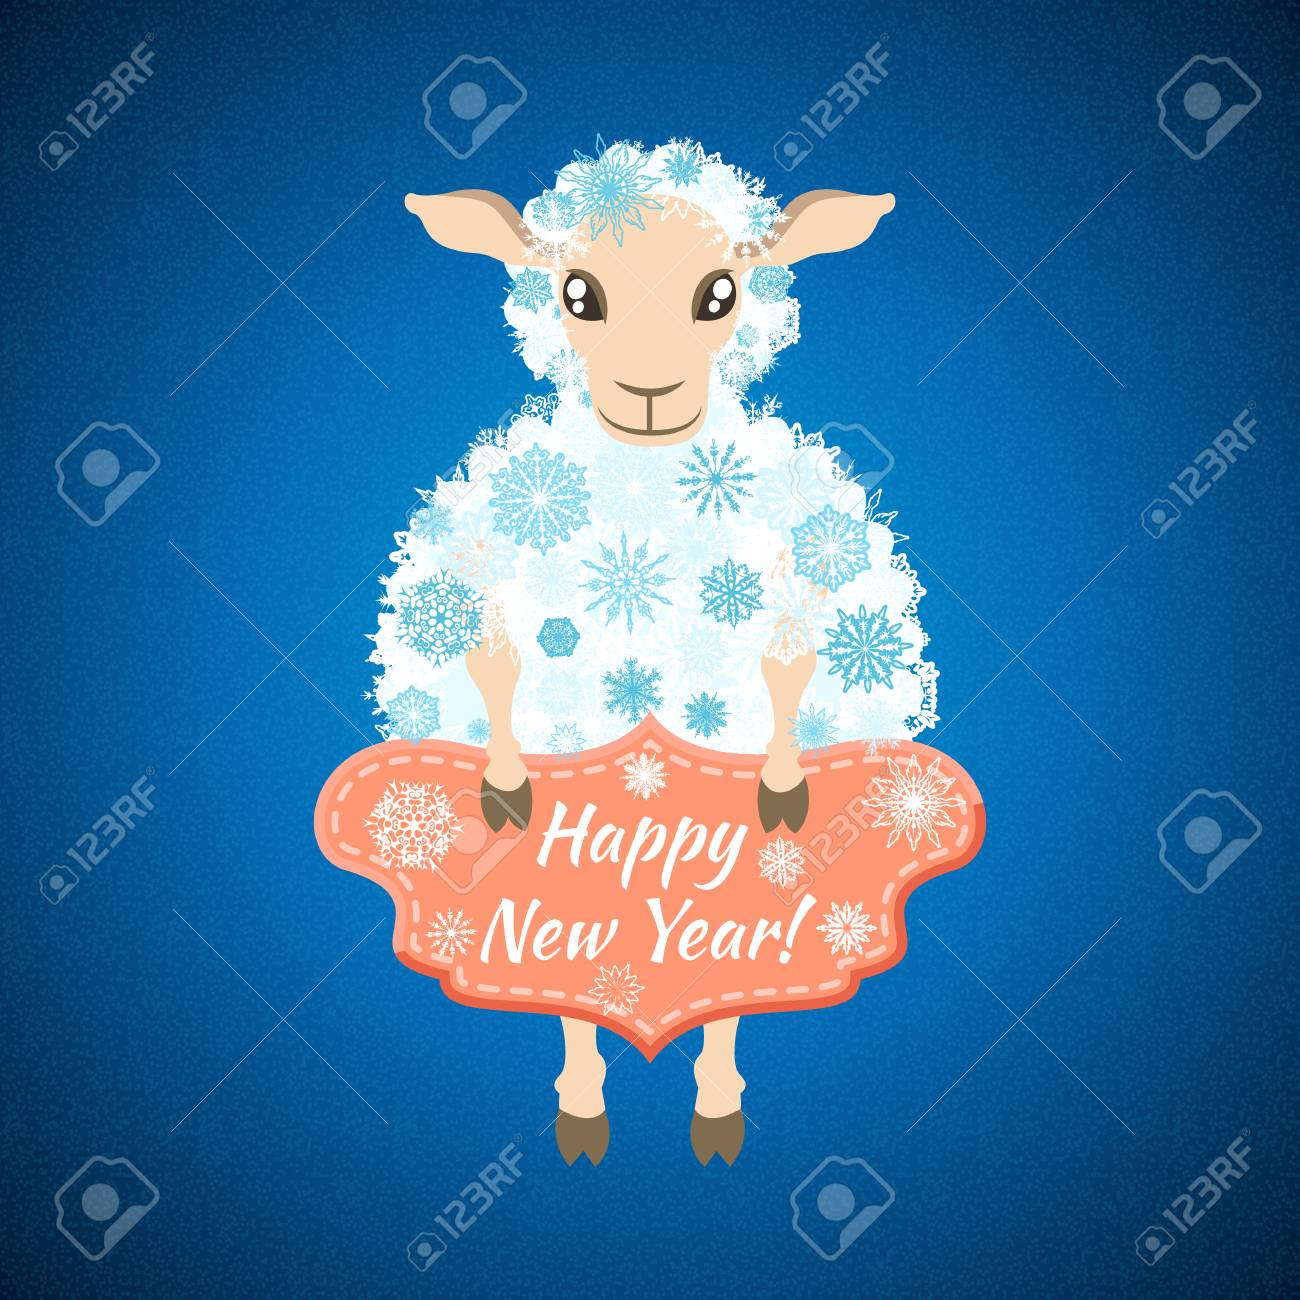 christmas background with sheep which is holding a plate with the words happy new year